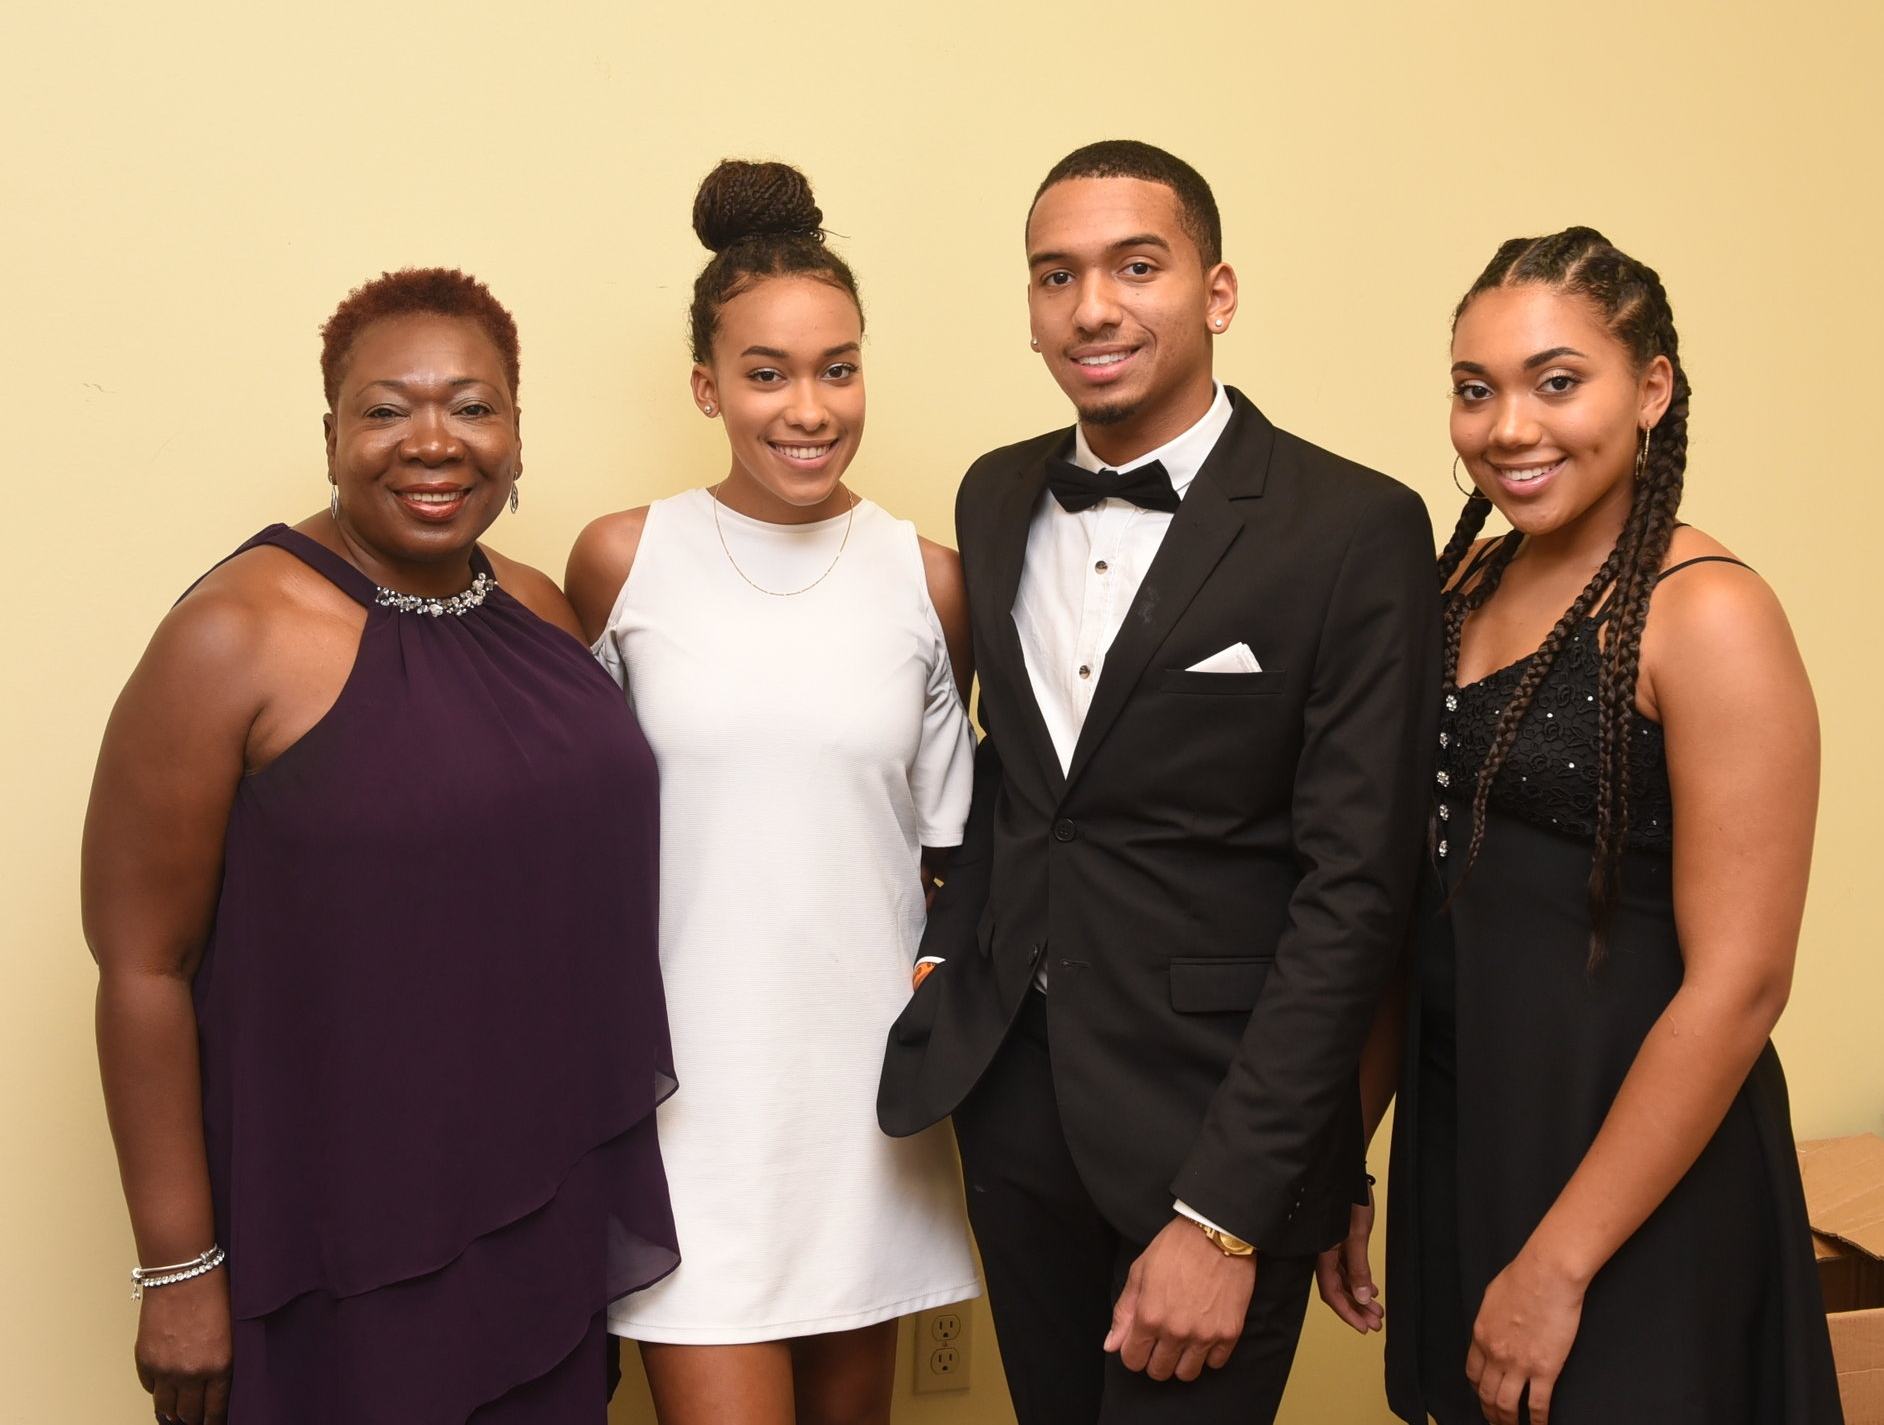 Margarette Johnson and triplets Janelle, Marcus and Lalique Allan